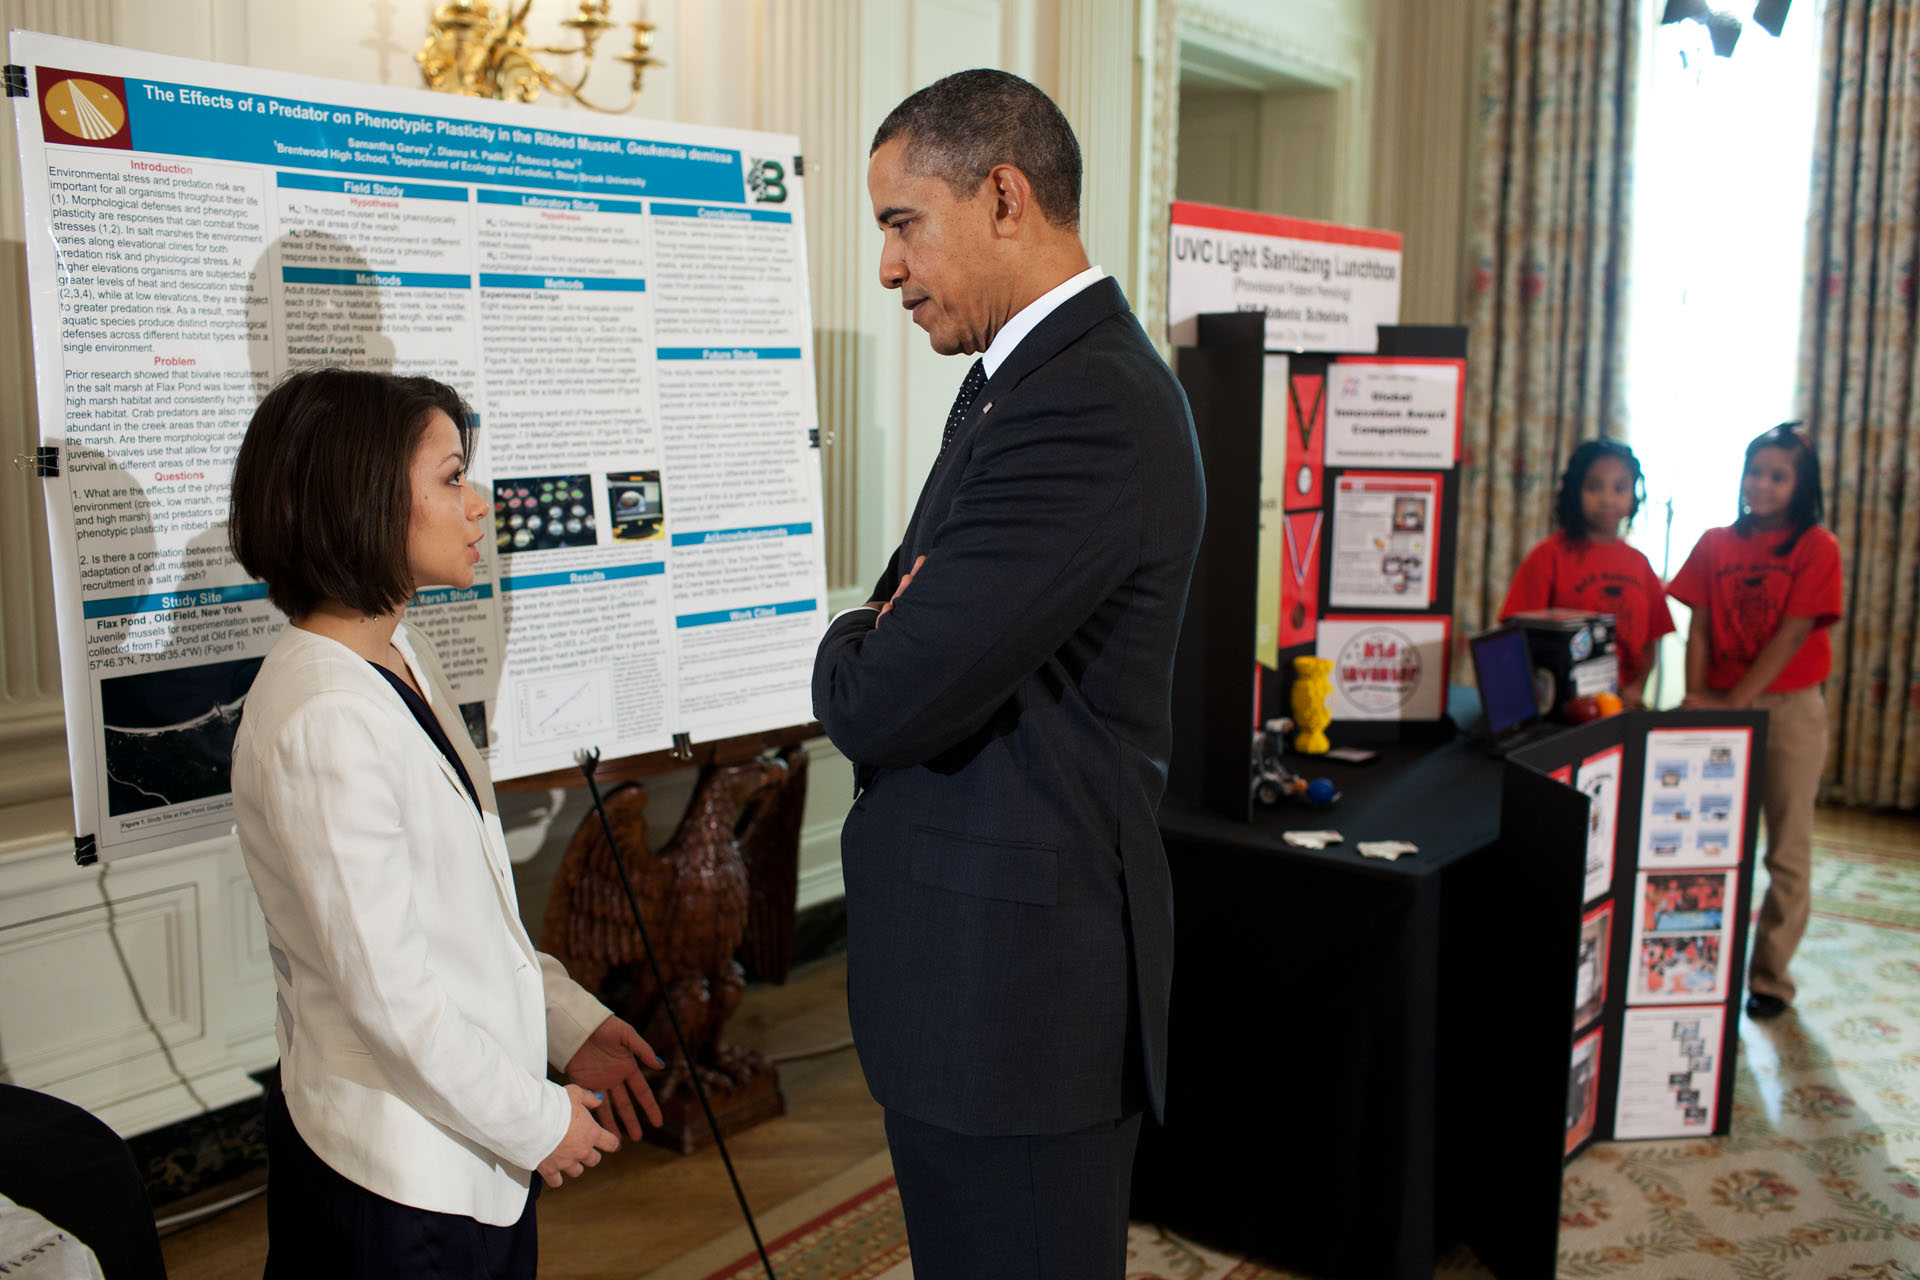 President Obama Speaks to Samantha Garvey